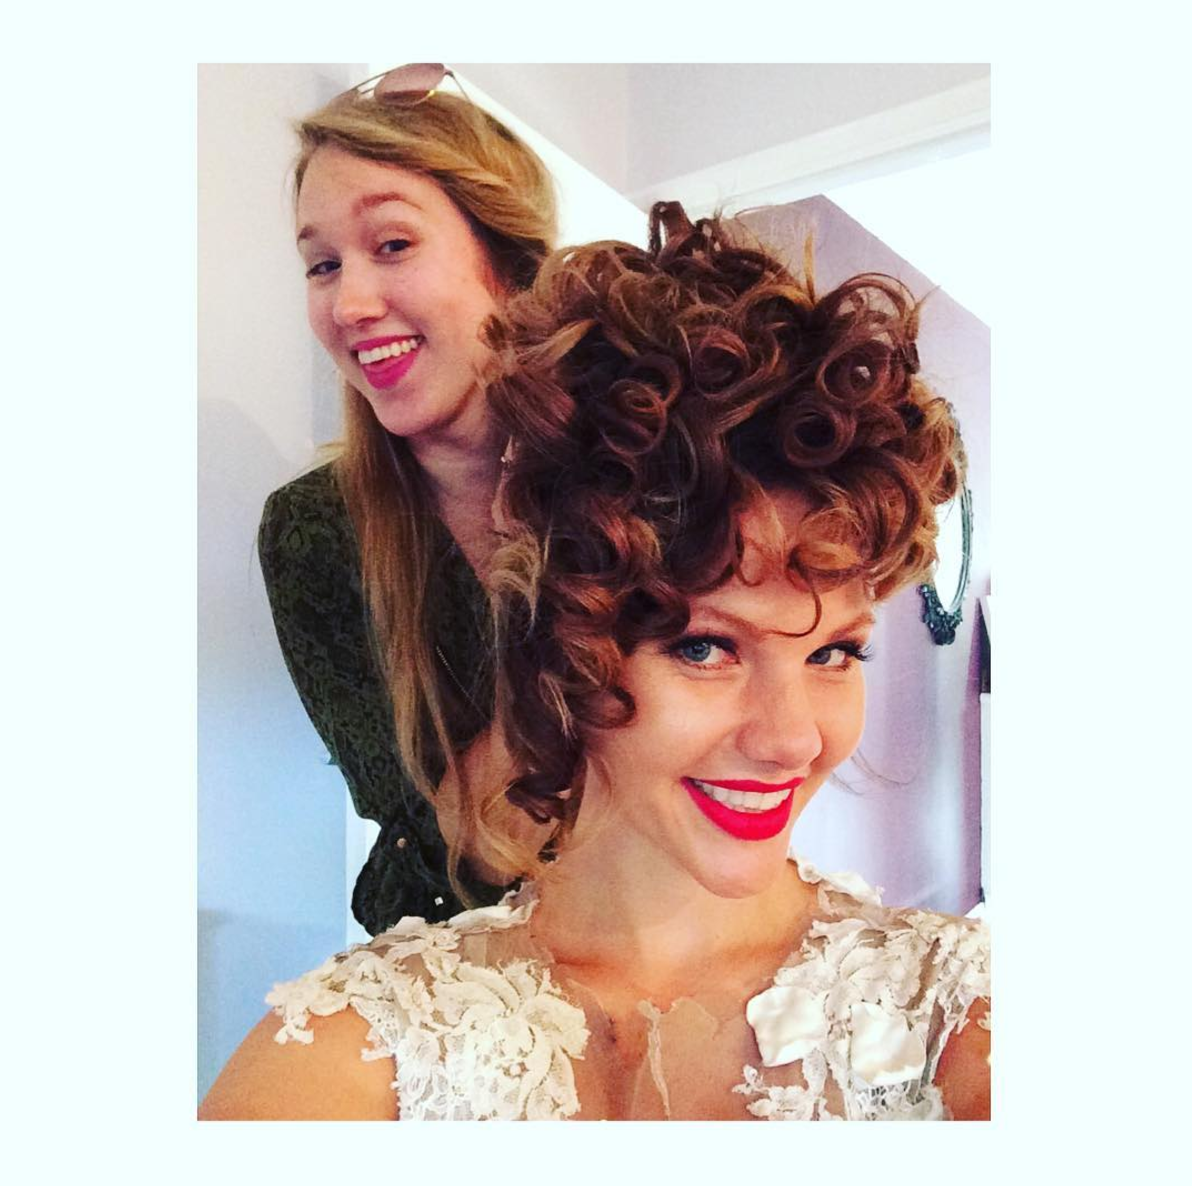 Action shot!! Fixing up @ellymaydayofficialfanpage Elly's hair 💁 was so great to meet this lovely lady today ❤️  #hairstyle #hairartist #hairstylist #photoshoot #hairandmakeupartist #makeupartist #couture #fashion #model #weddinghair #fashion